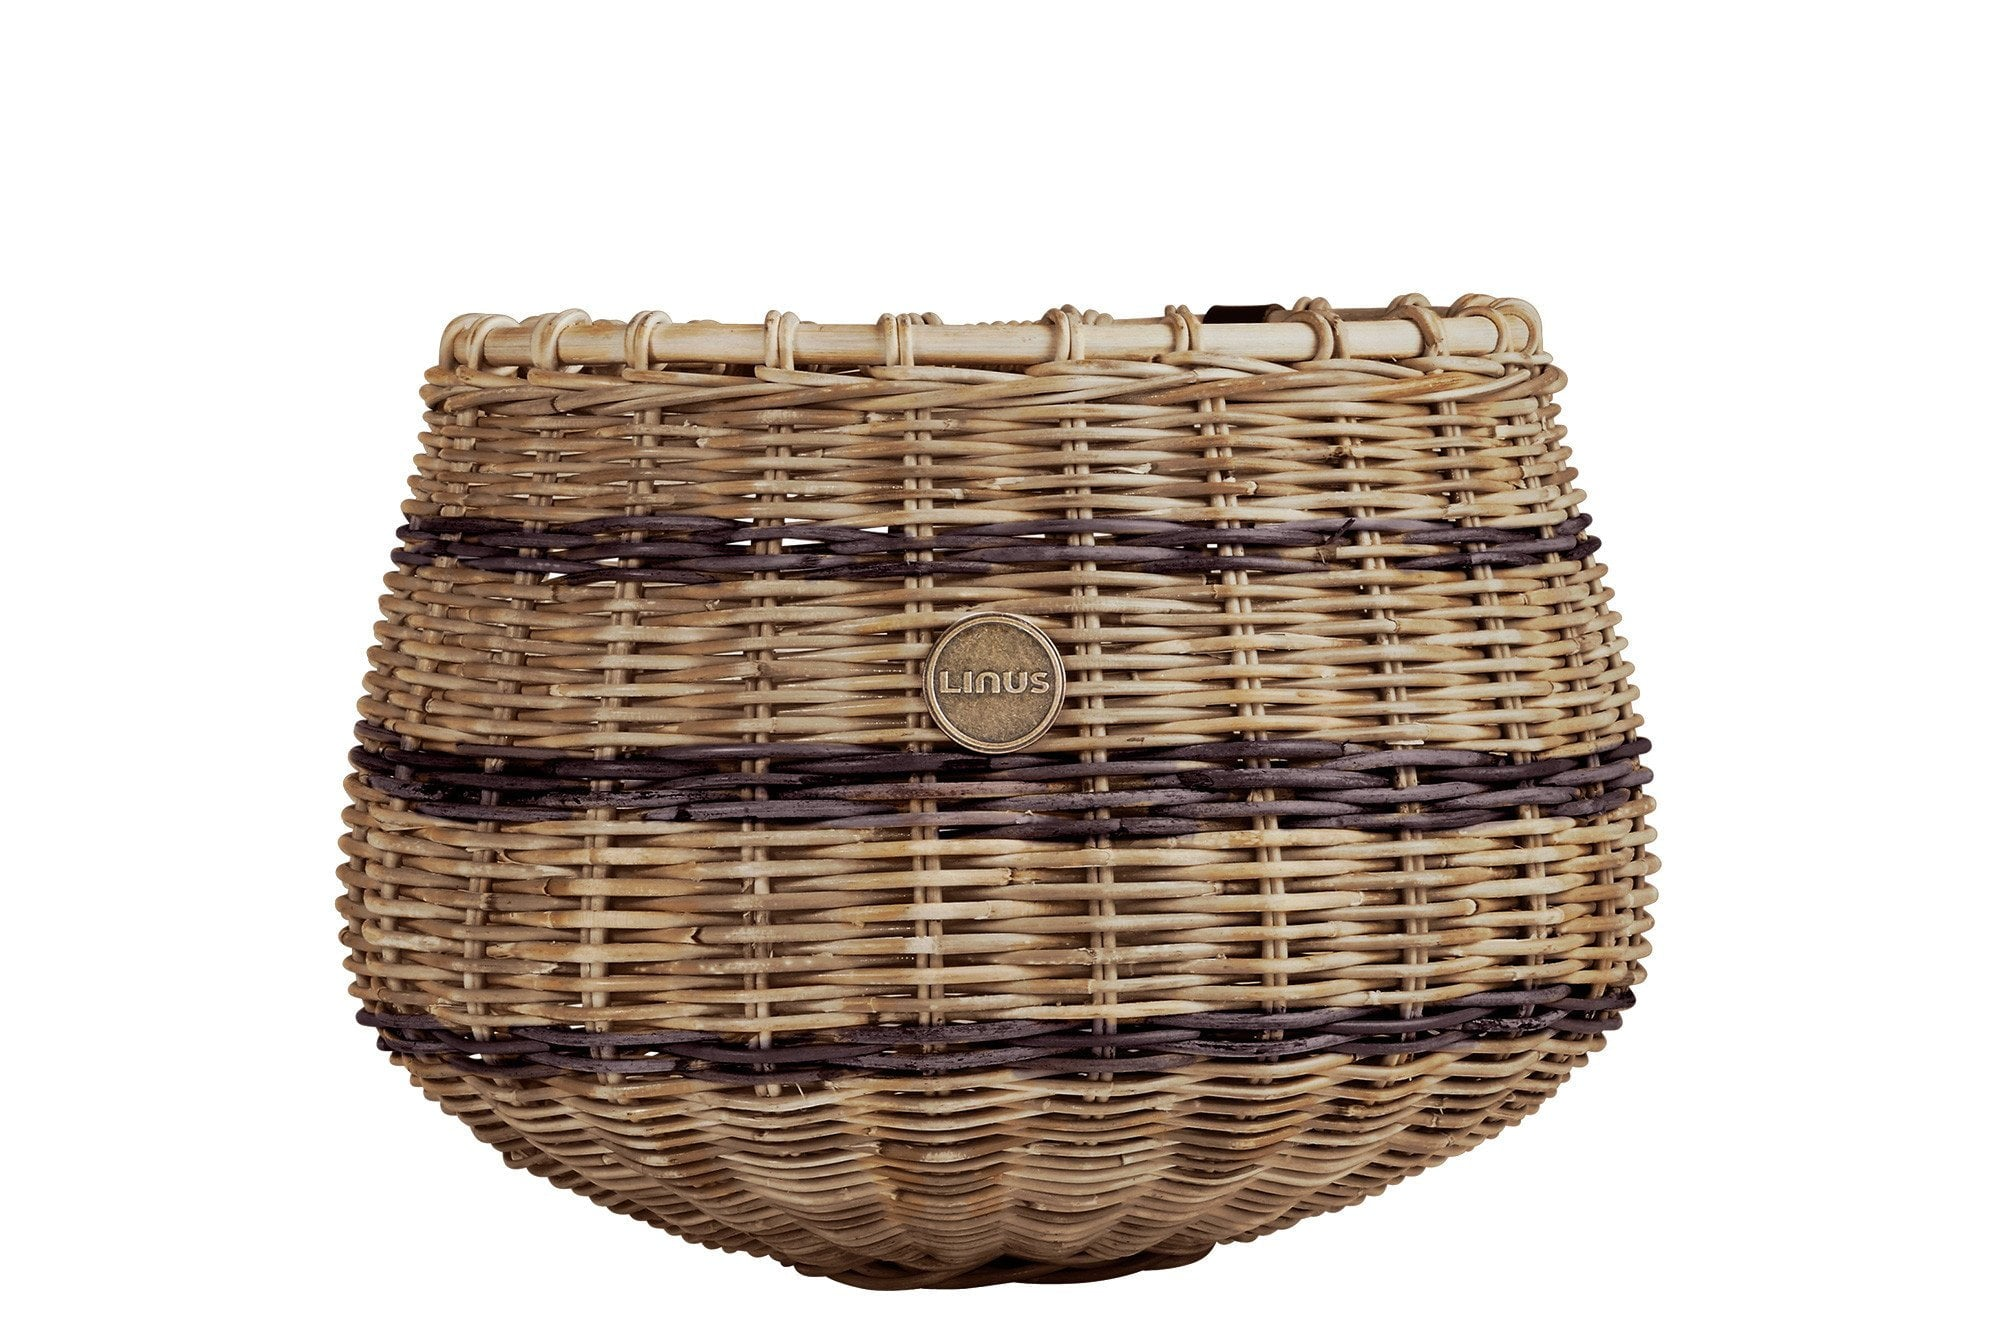 Wicker Bike//Bicycle Basket Vintage Colour Leather Straps Traditional D Shape